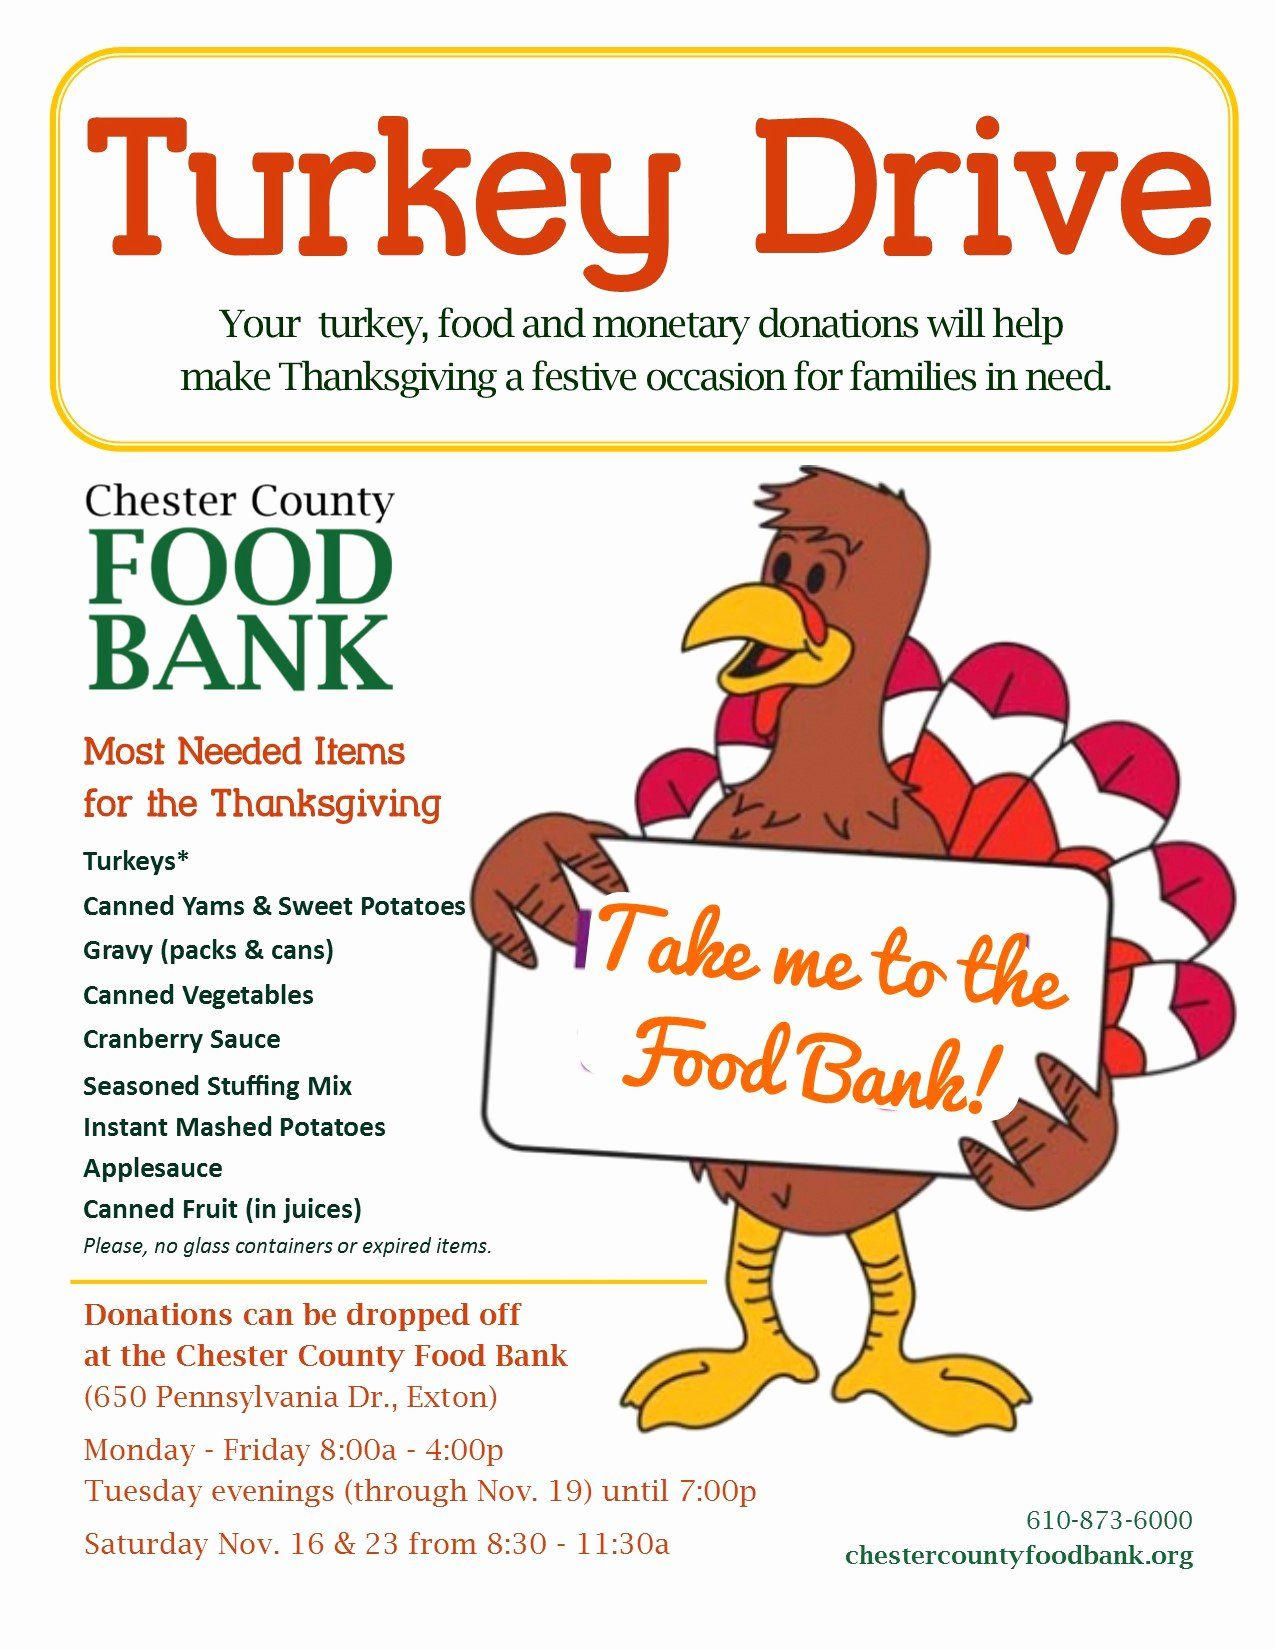 24 Food Drive Flyer Templates Free in 2020 Food drive